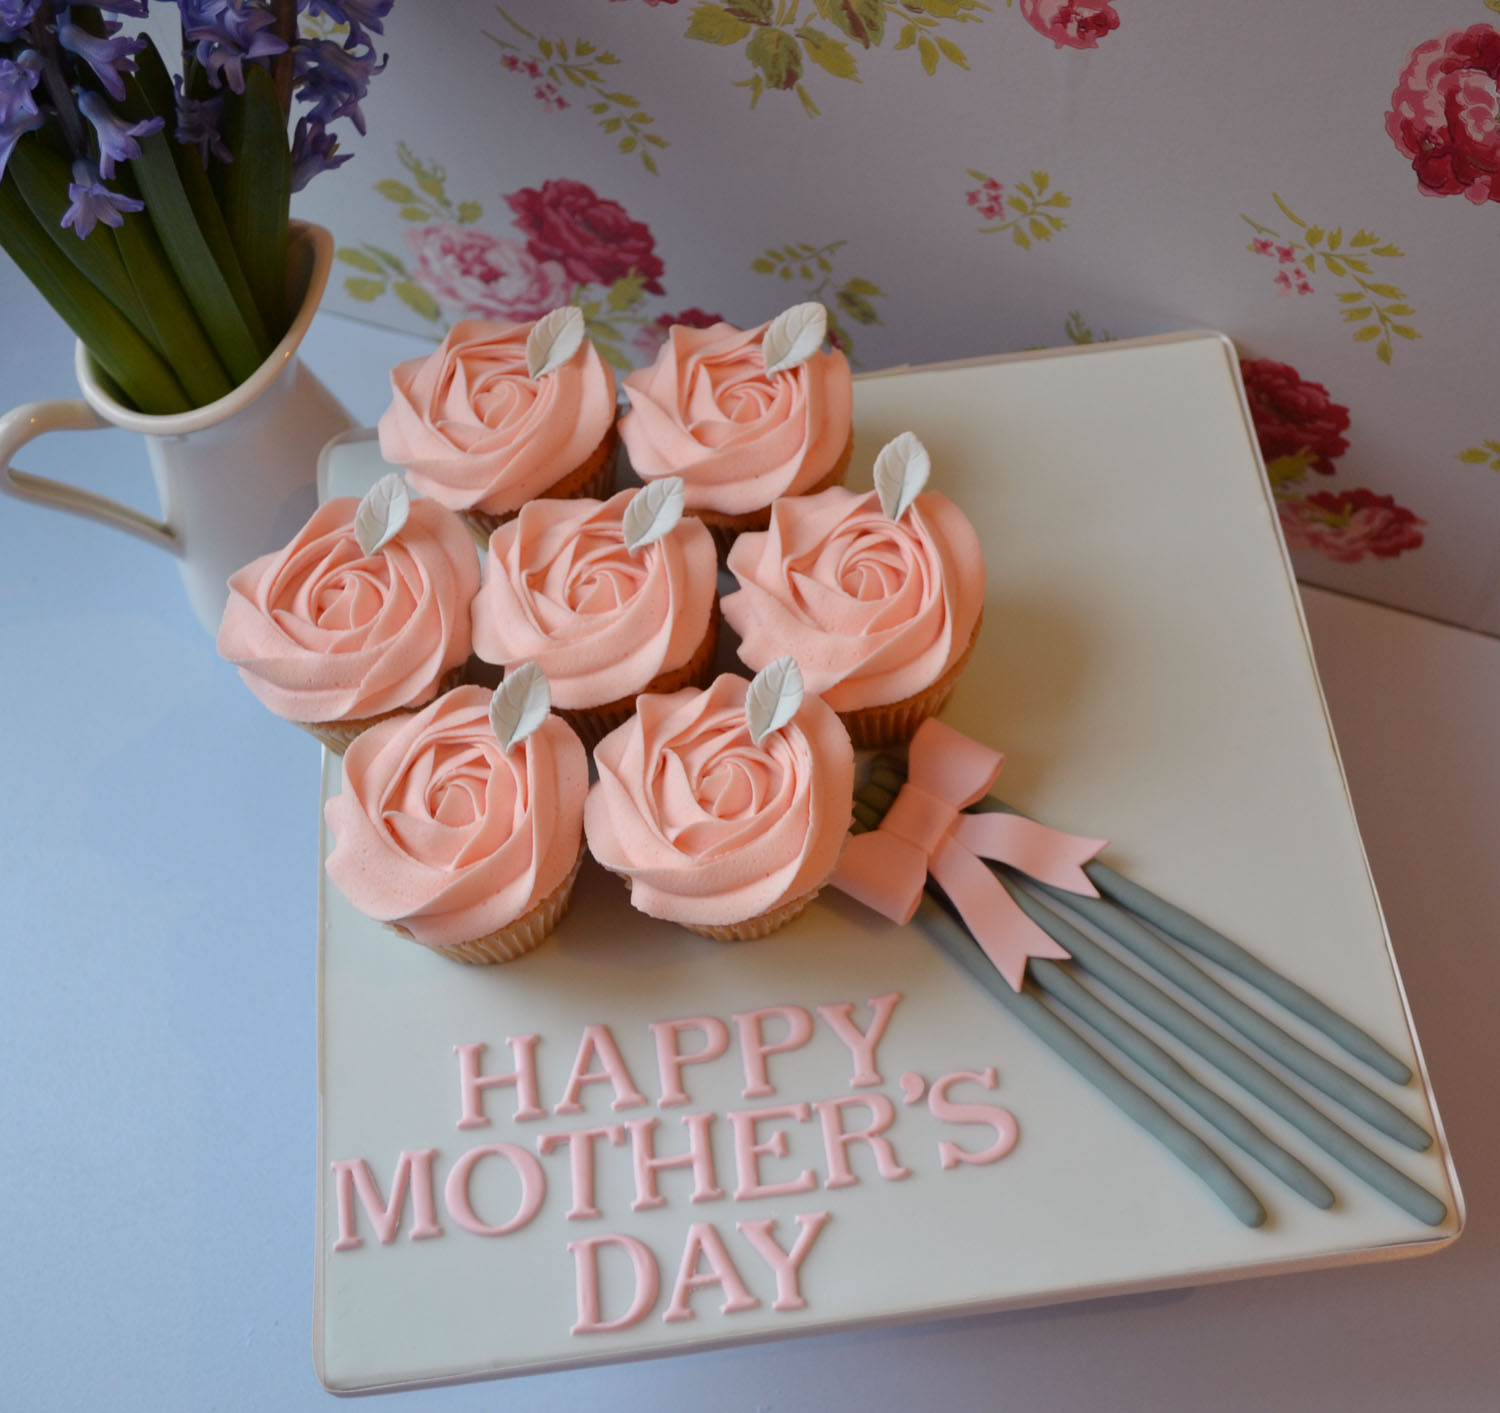 12 Photos of Mother's Day Cakes And Cupcakes